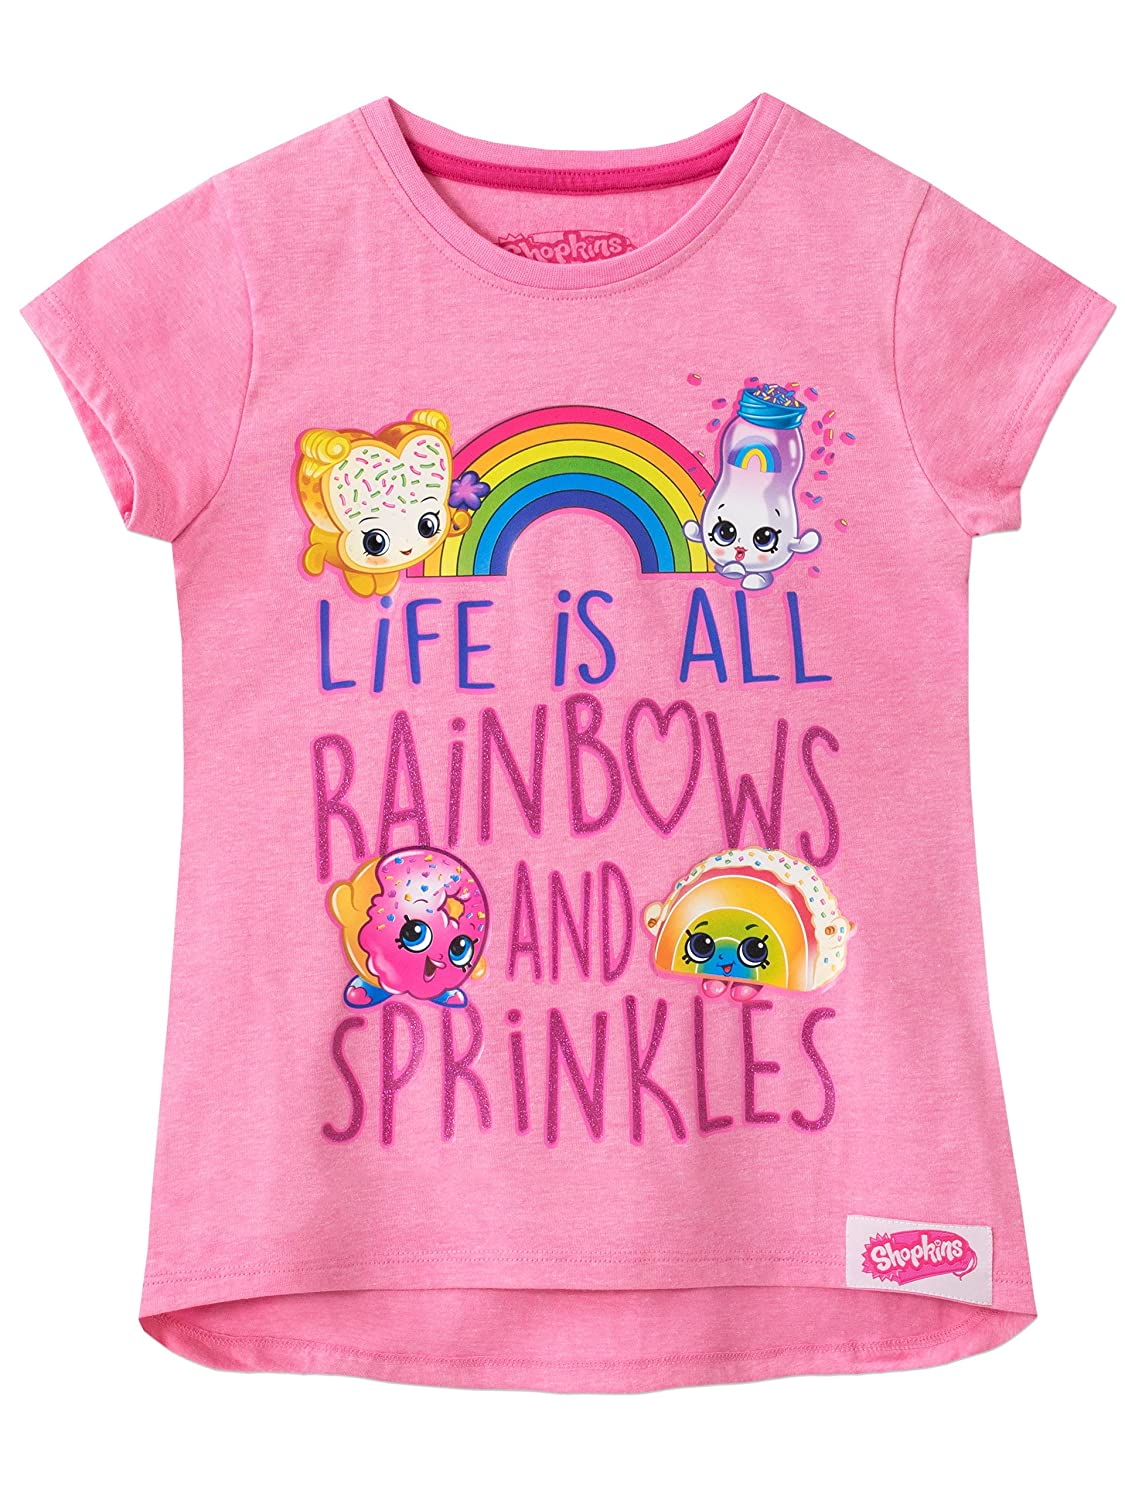 Shopkins Girls Shopkins T-Shirt Ages 3 to 13 Years